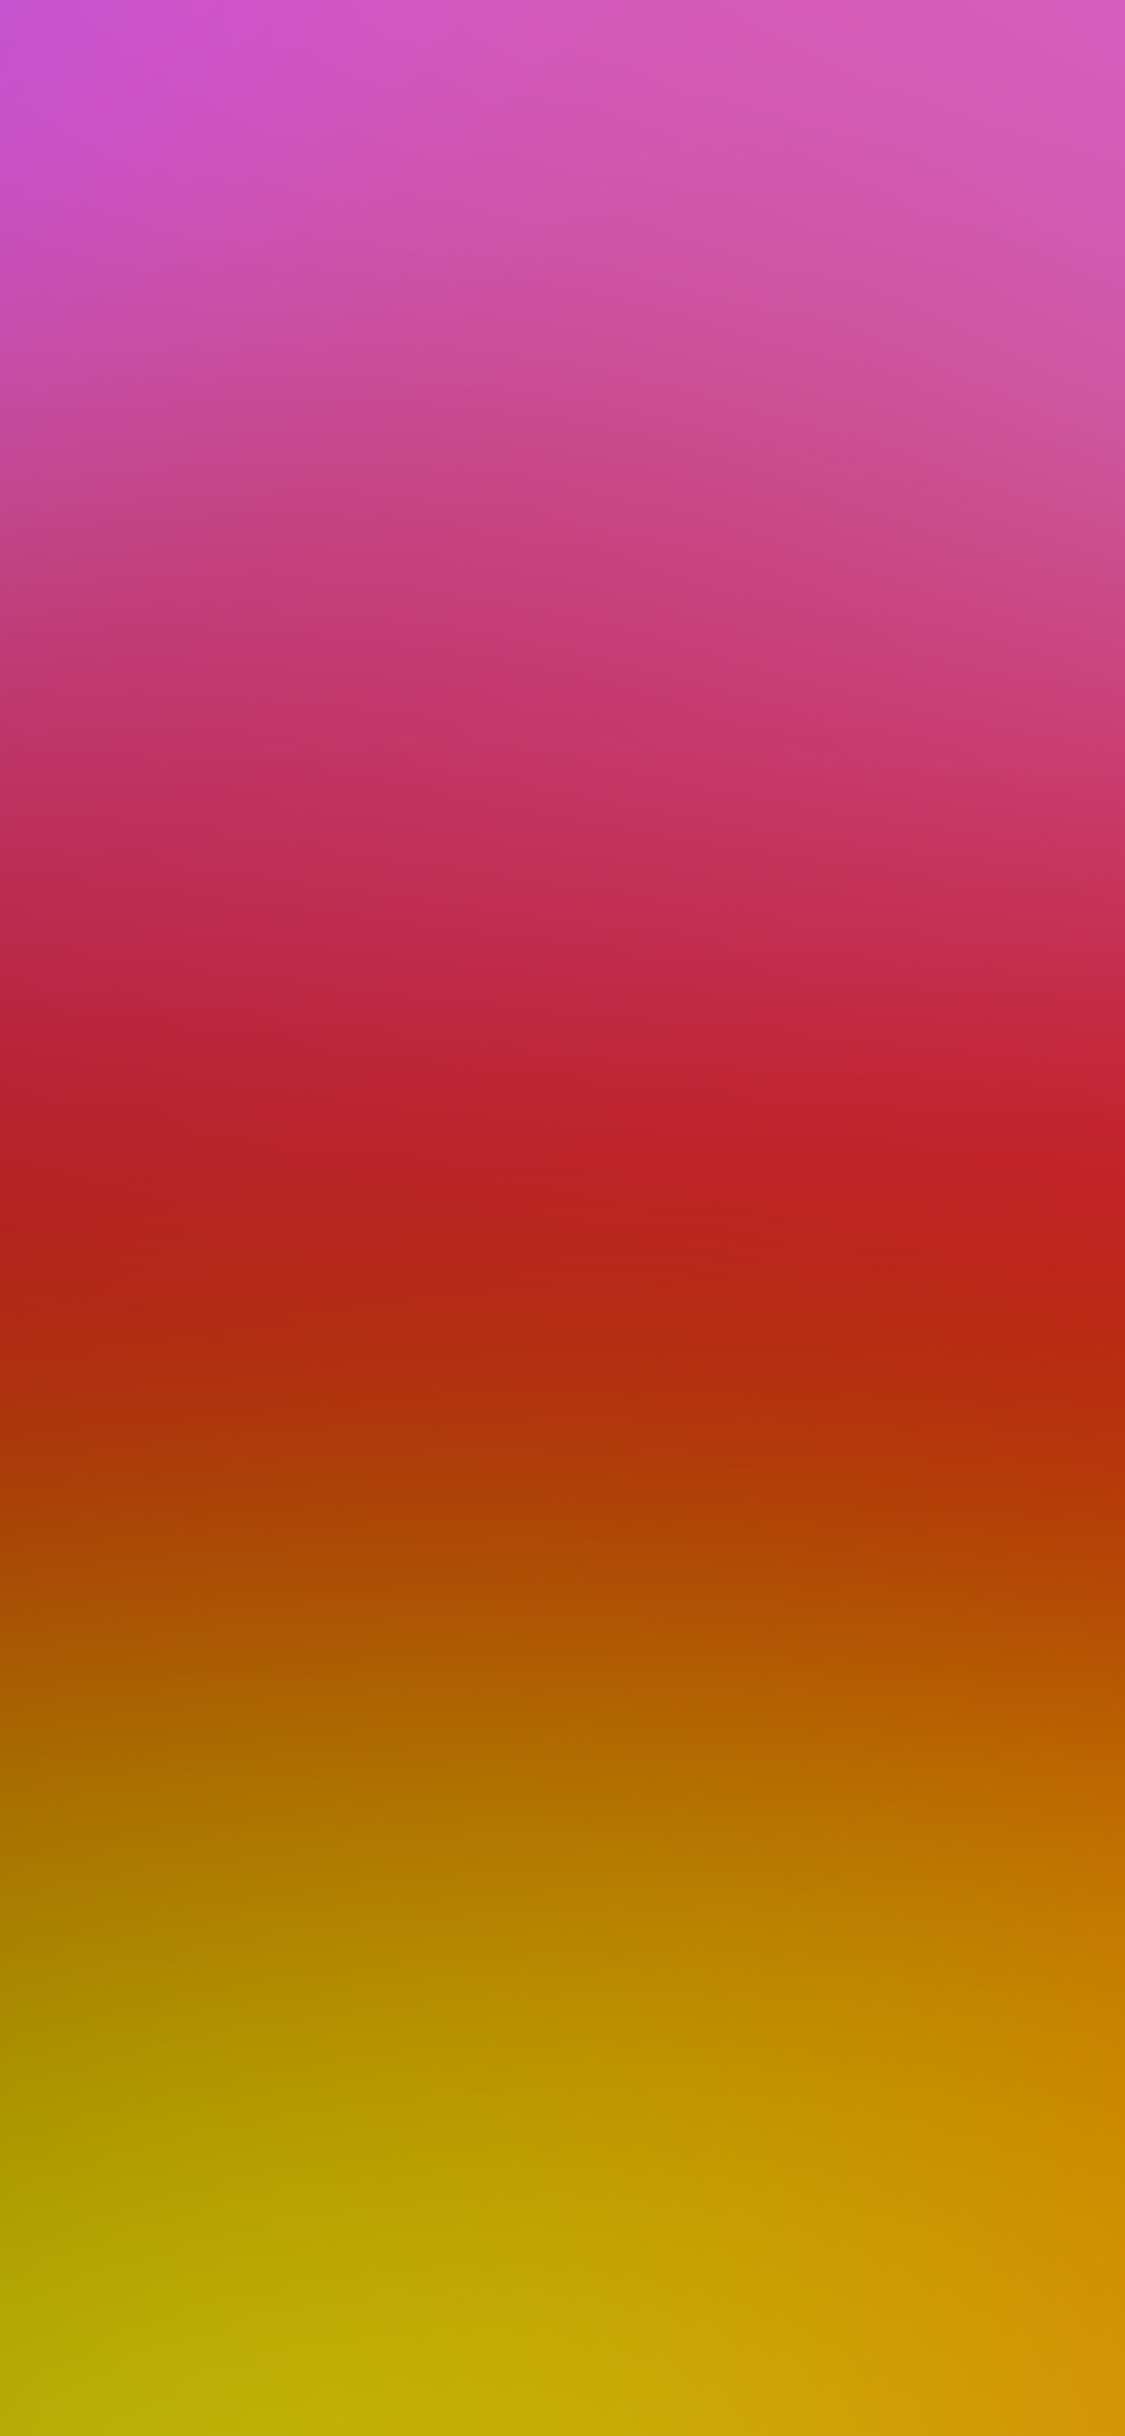 iPhoneXpapers.com-Apple-iPhone-wallpaper-sl31-pink-red-orange-blur-gradation